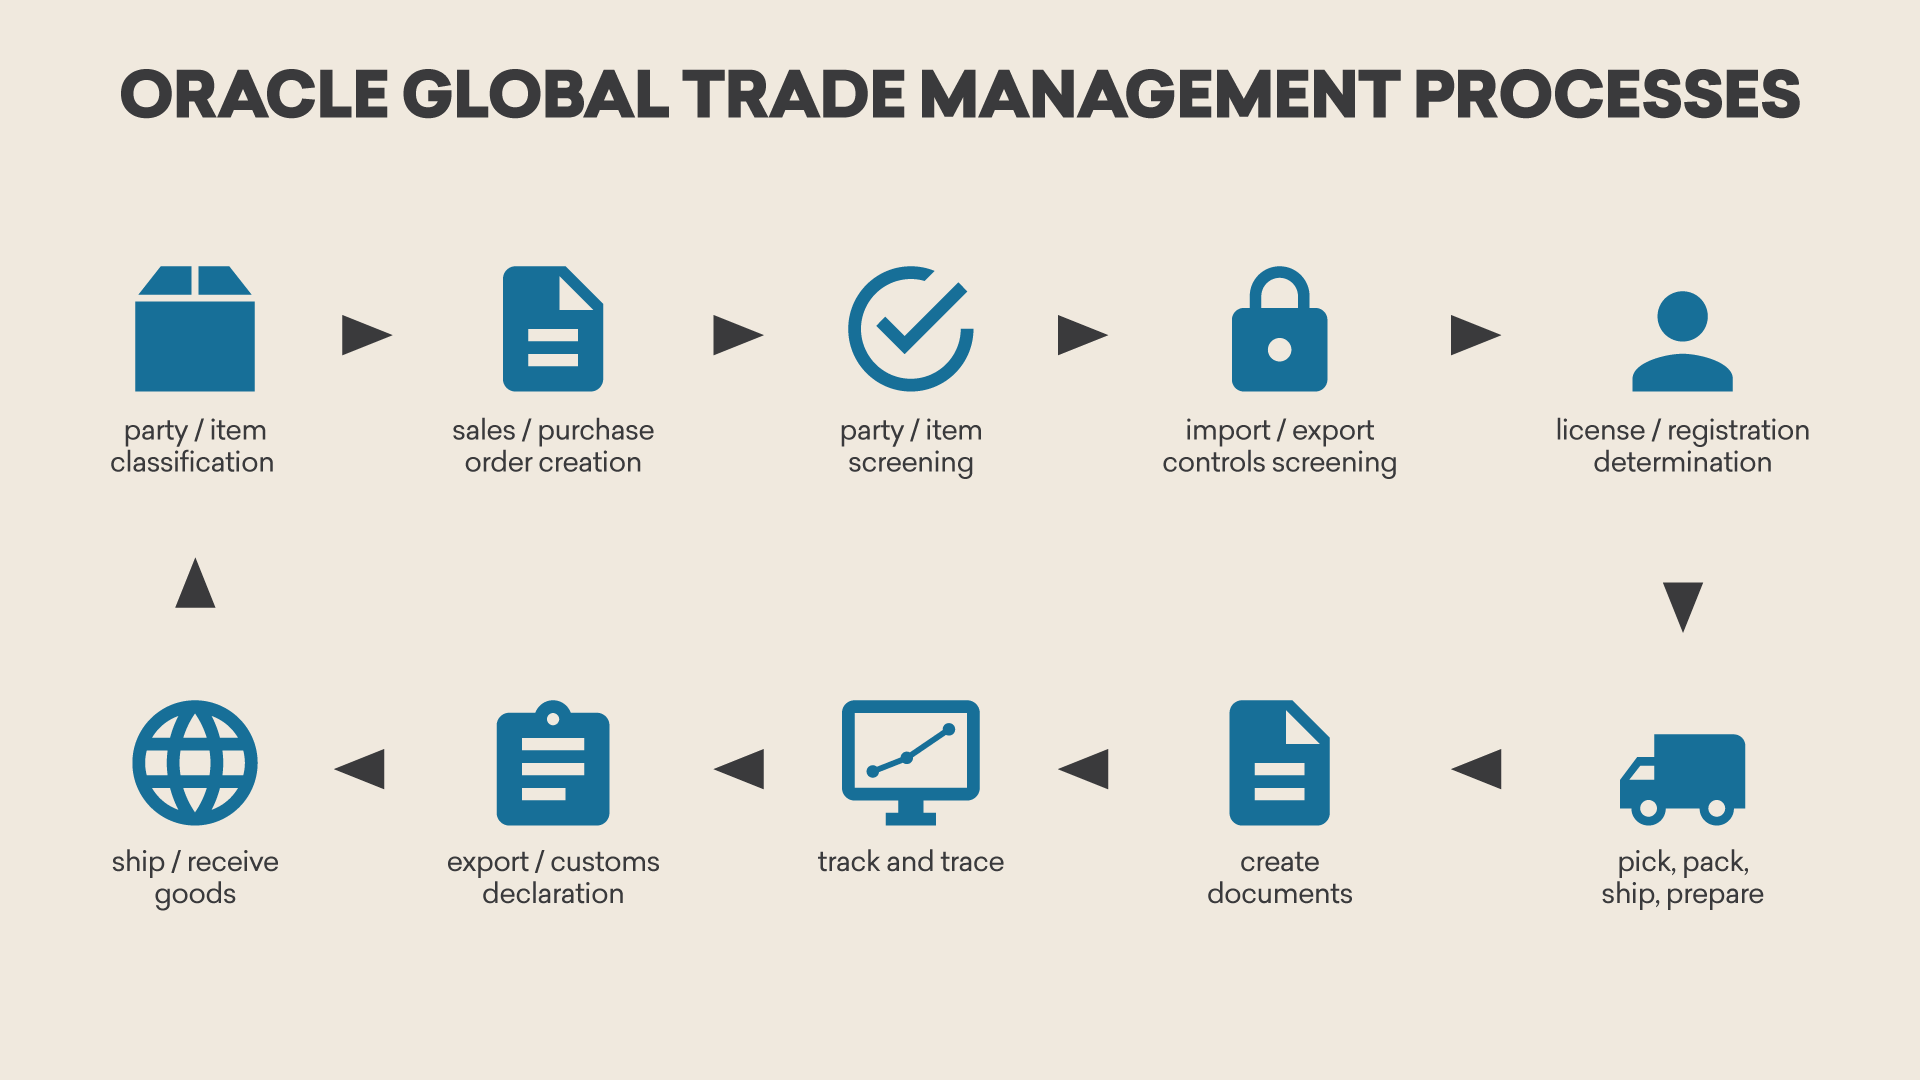 Oracle Global Trade Management Processes